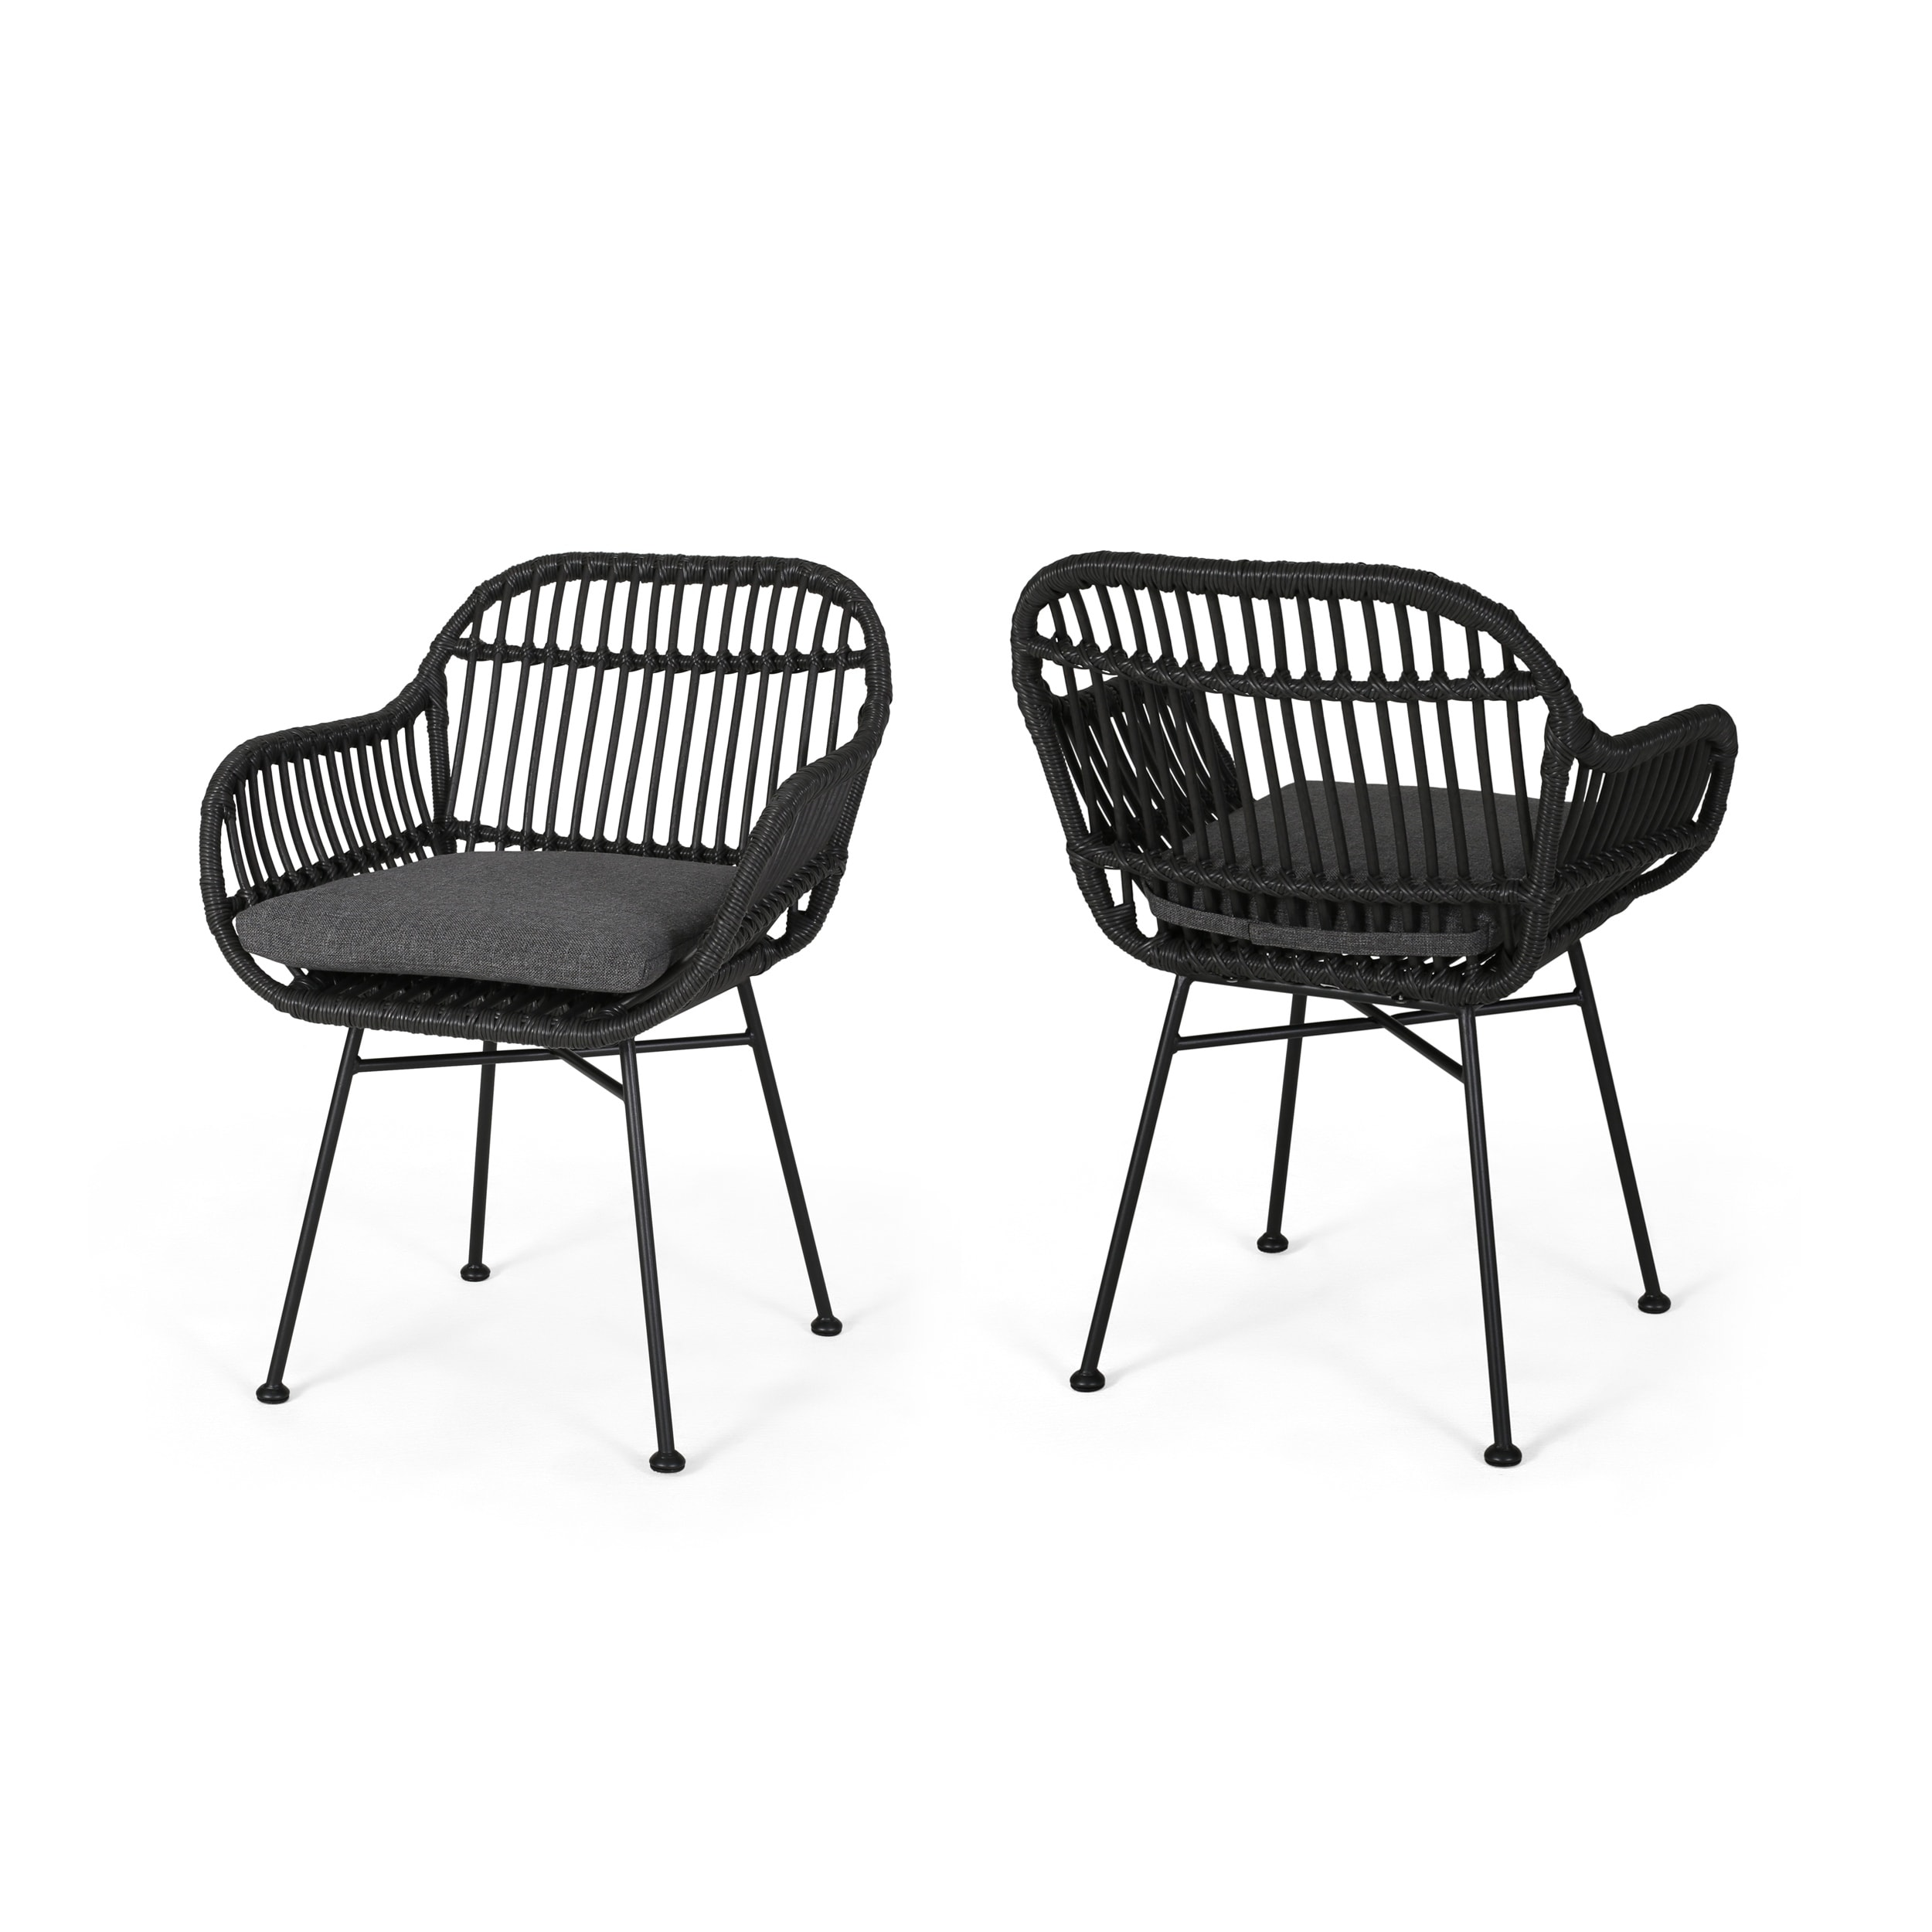 Orlando Outdoor Woven Faux Rattan Chairs With Cushions Set Of 2 By Christopher Knight Home On Free Shipping Today 27569218